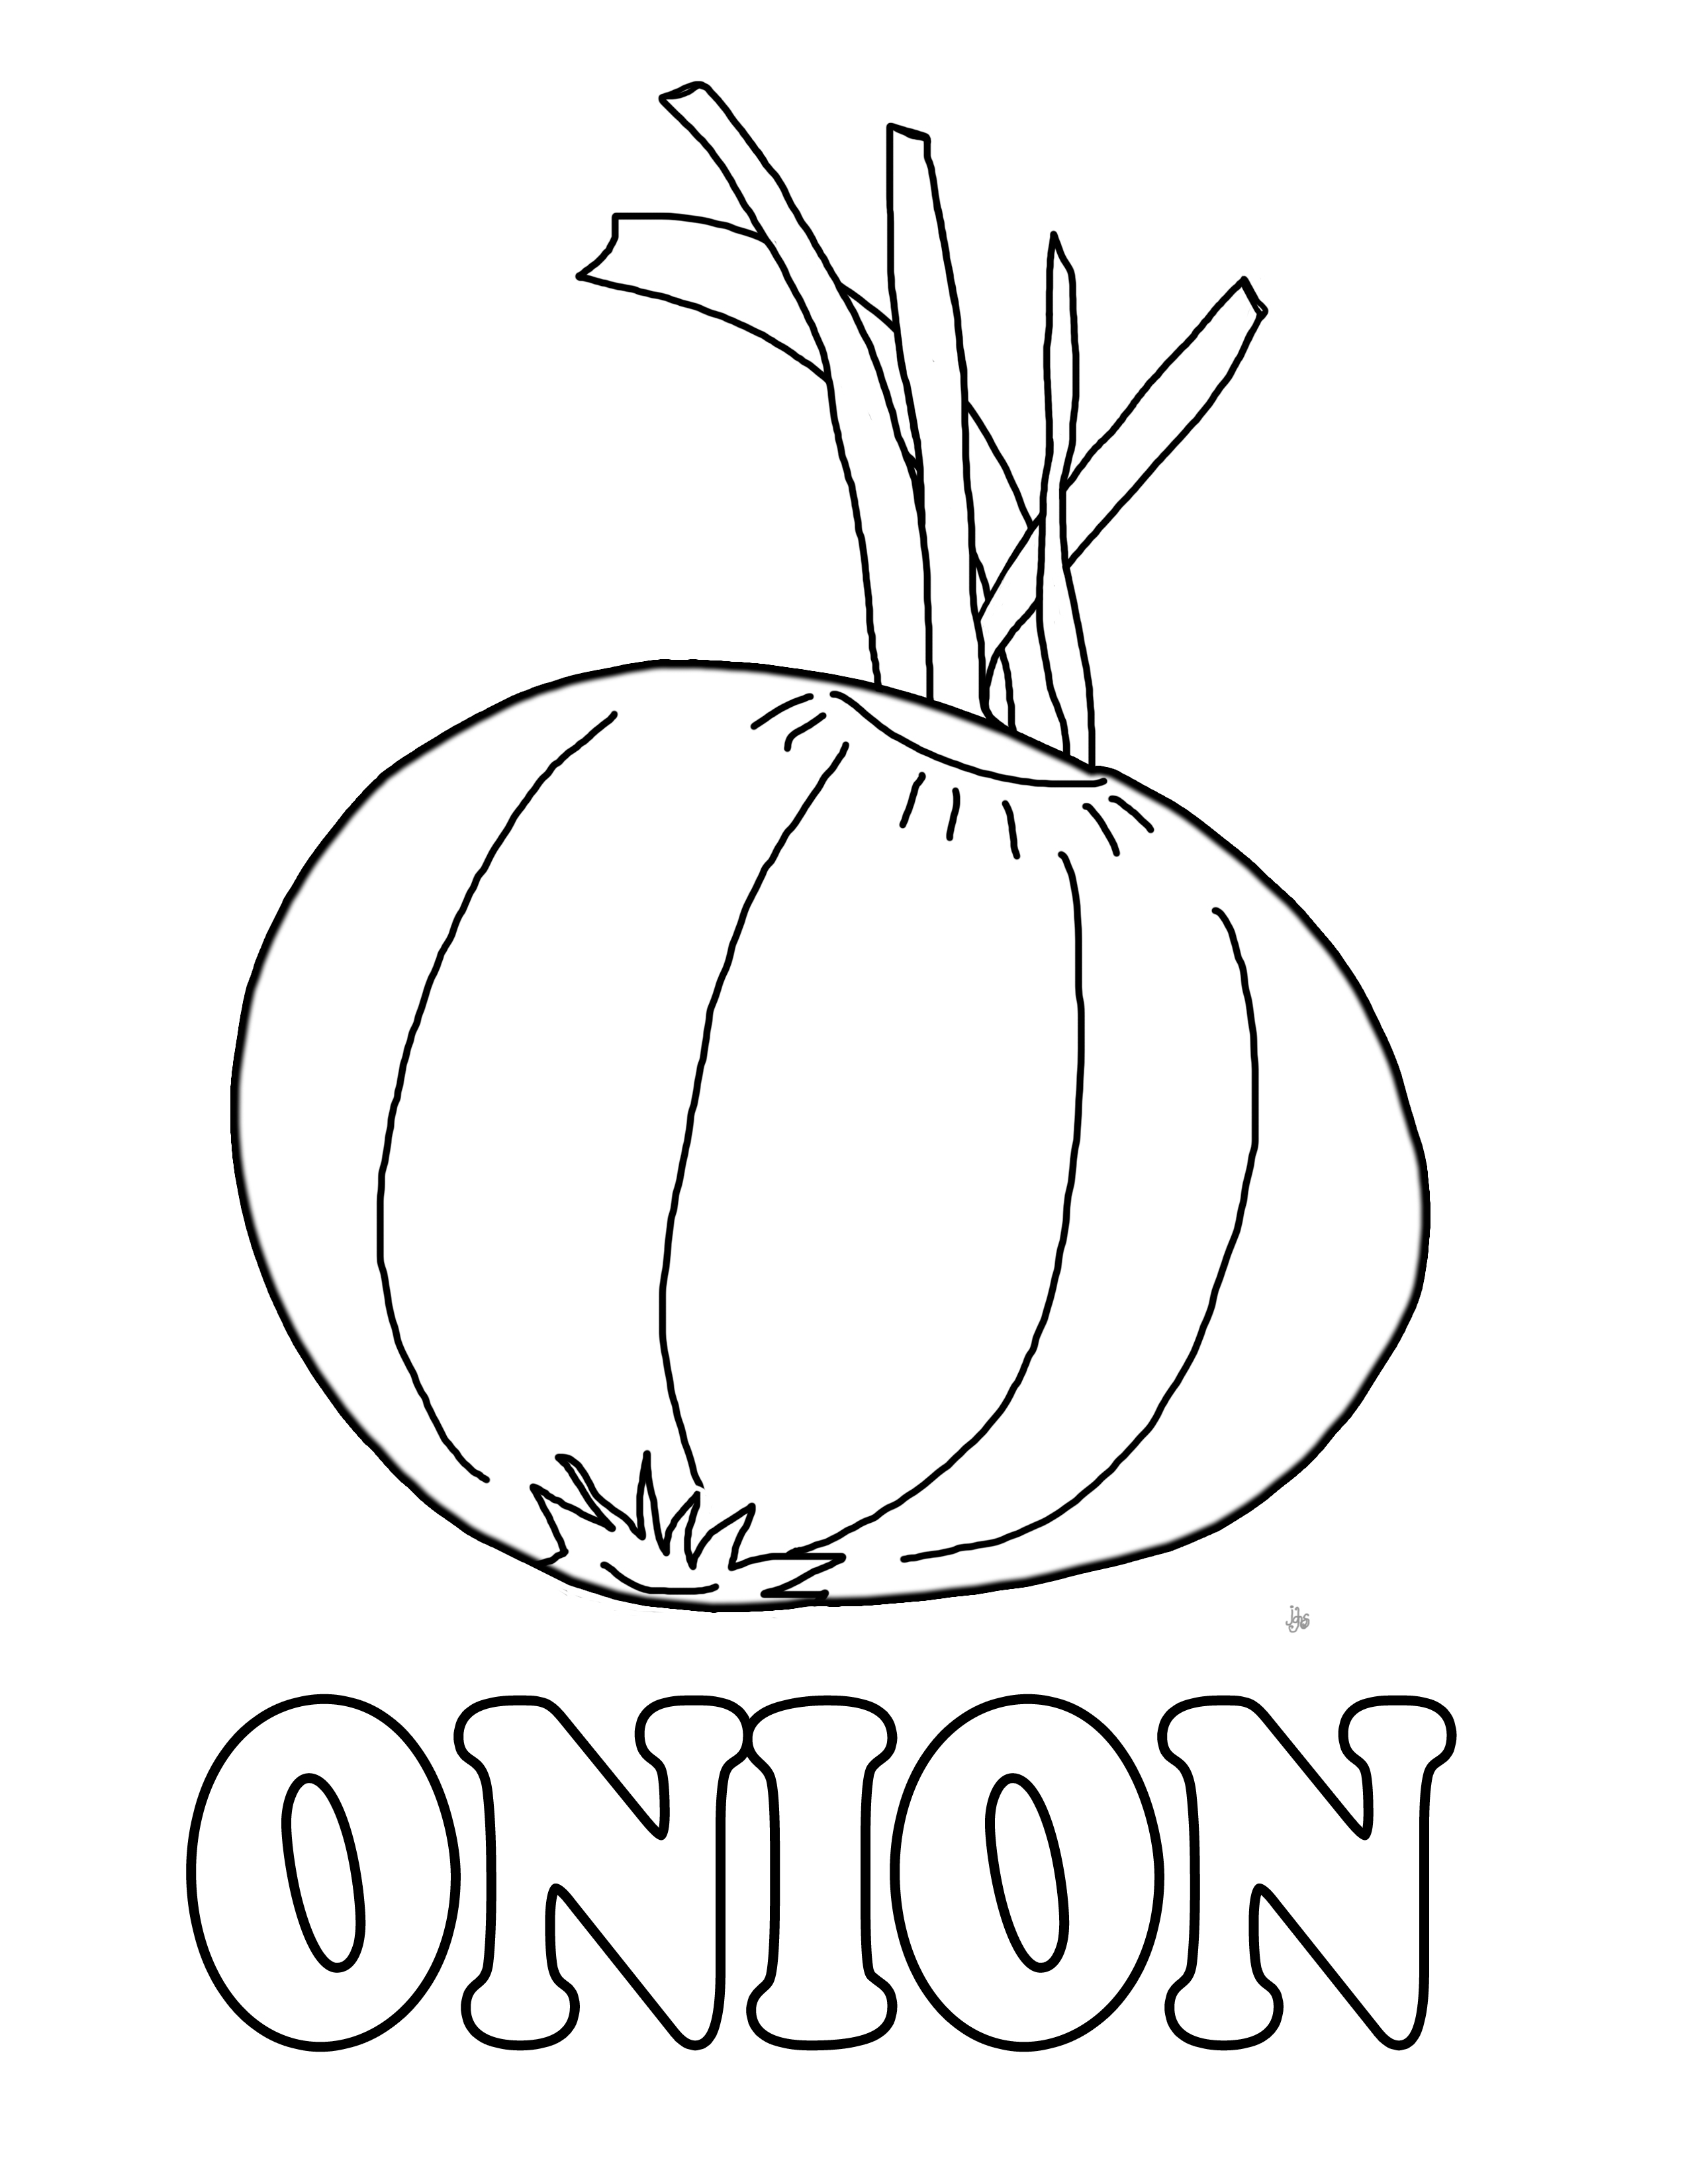 Onion clipart coloring page Textures Free an Pages onion